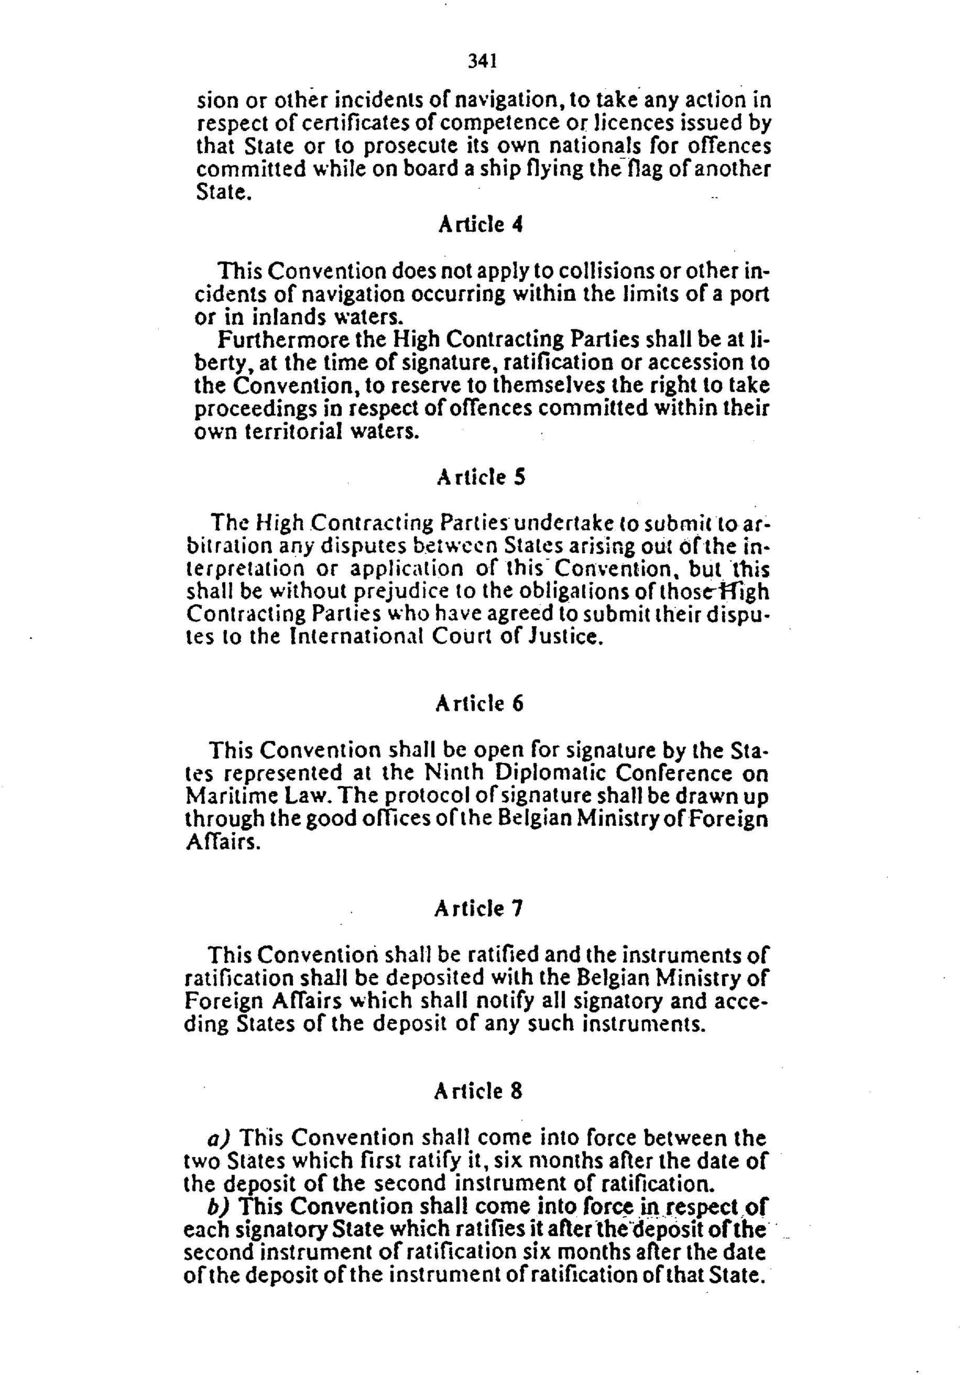 Furthermore the High Contracting Parties shall be at liberty, at the time of signature, ratification or accession to the Convention, to reserve to themselves the right to take proceedings in respect